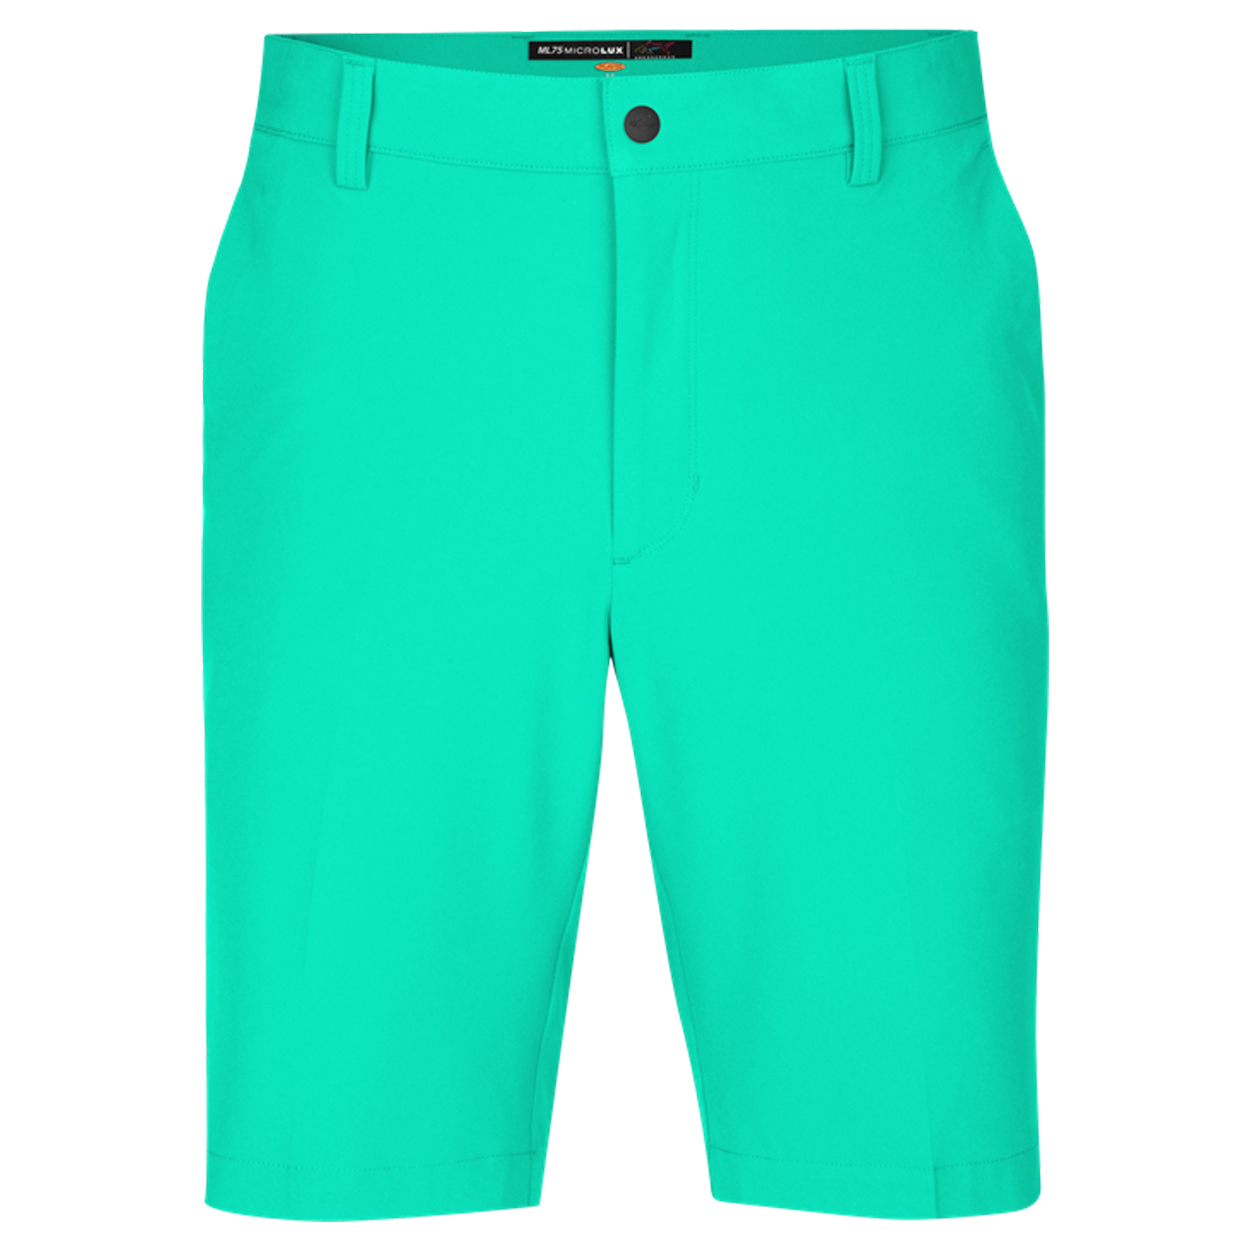 Greg Norman Ml75 Microlux Flat Front Shorts *Closeout*